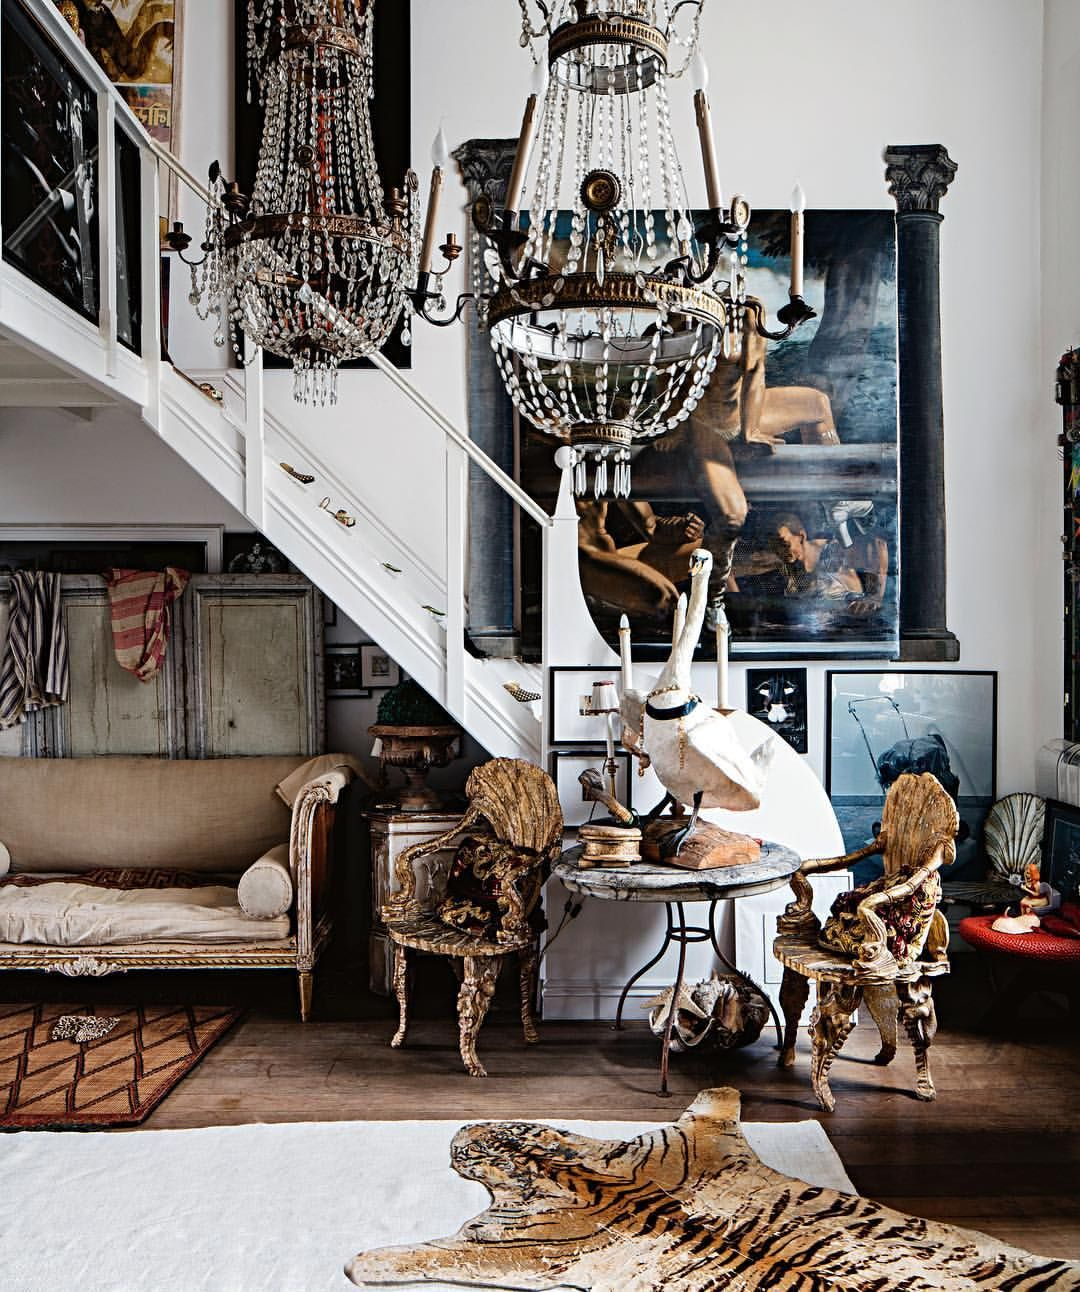 20 eclectic interior design ideas for your best home eclectic interiordesign ideas homedecor modern awesome